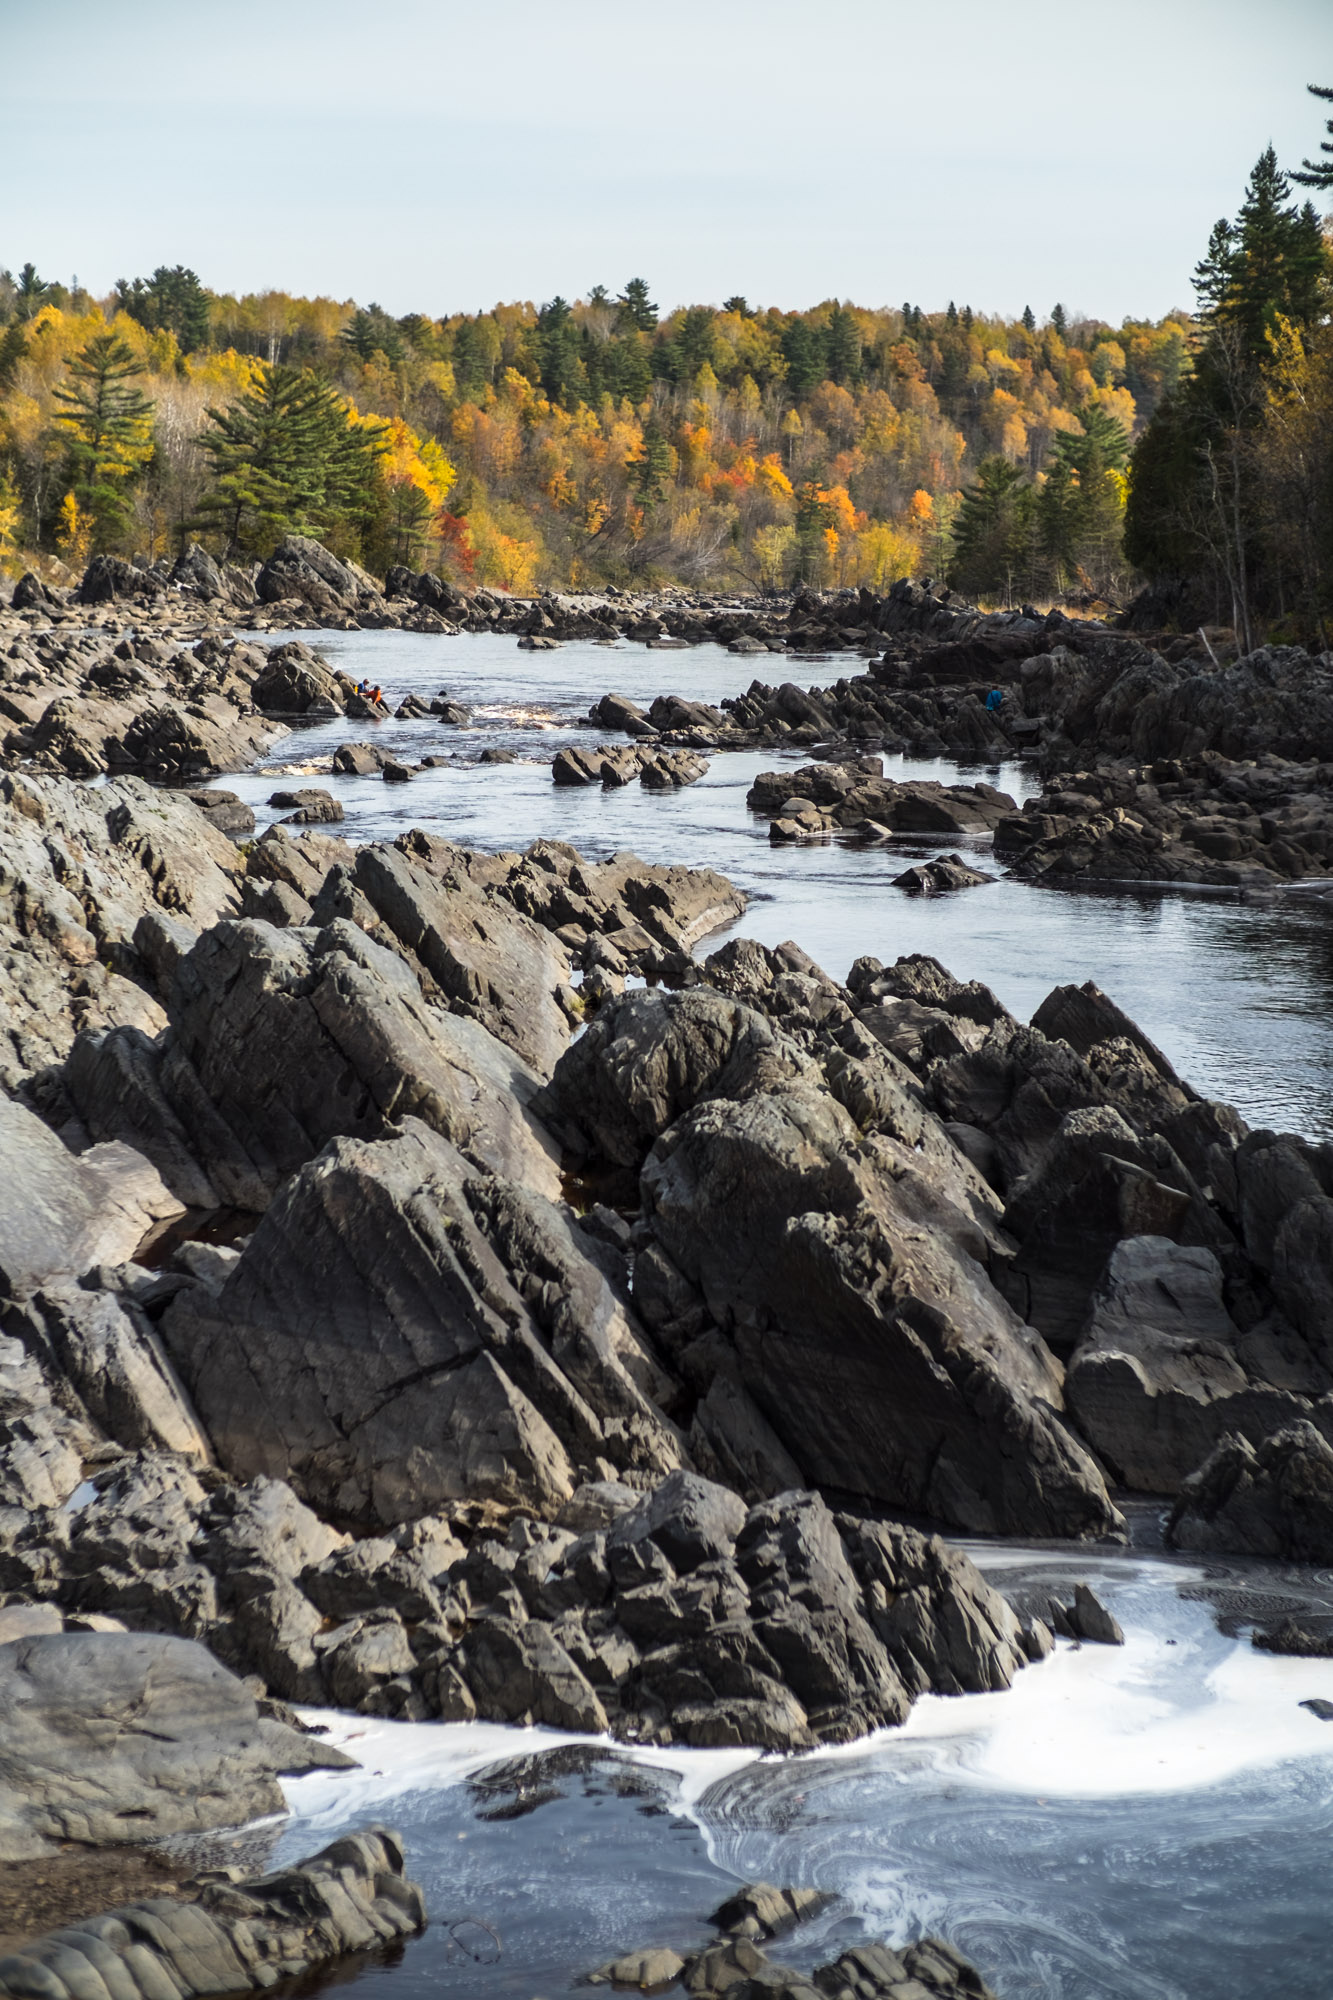 Slate and greywacke bedrock plates rise from the St. Louis River in Jay Cooke State Park. Image courtesy of Alex Messenger Photography.